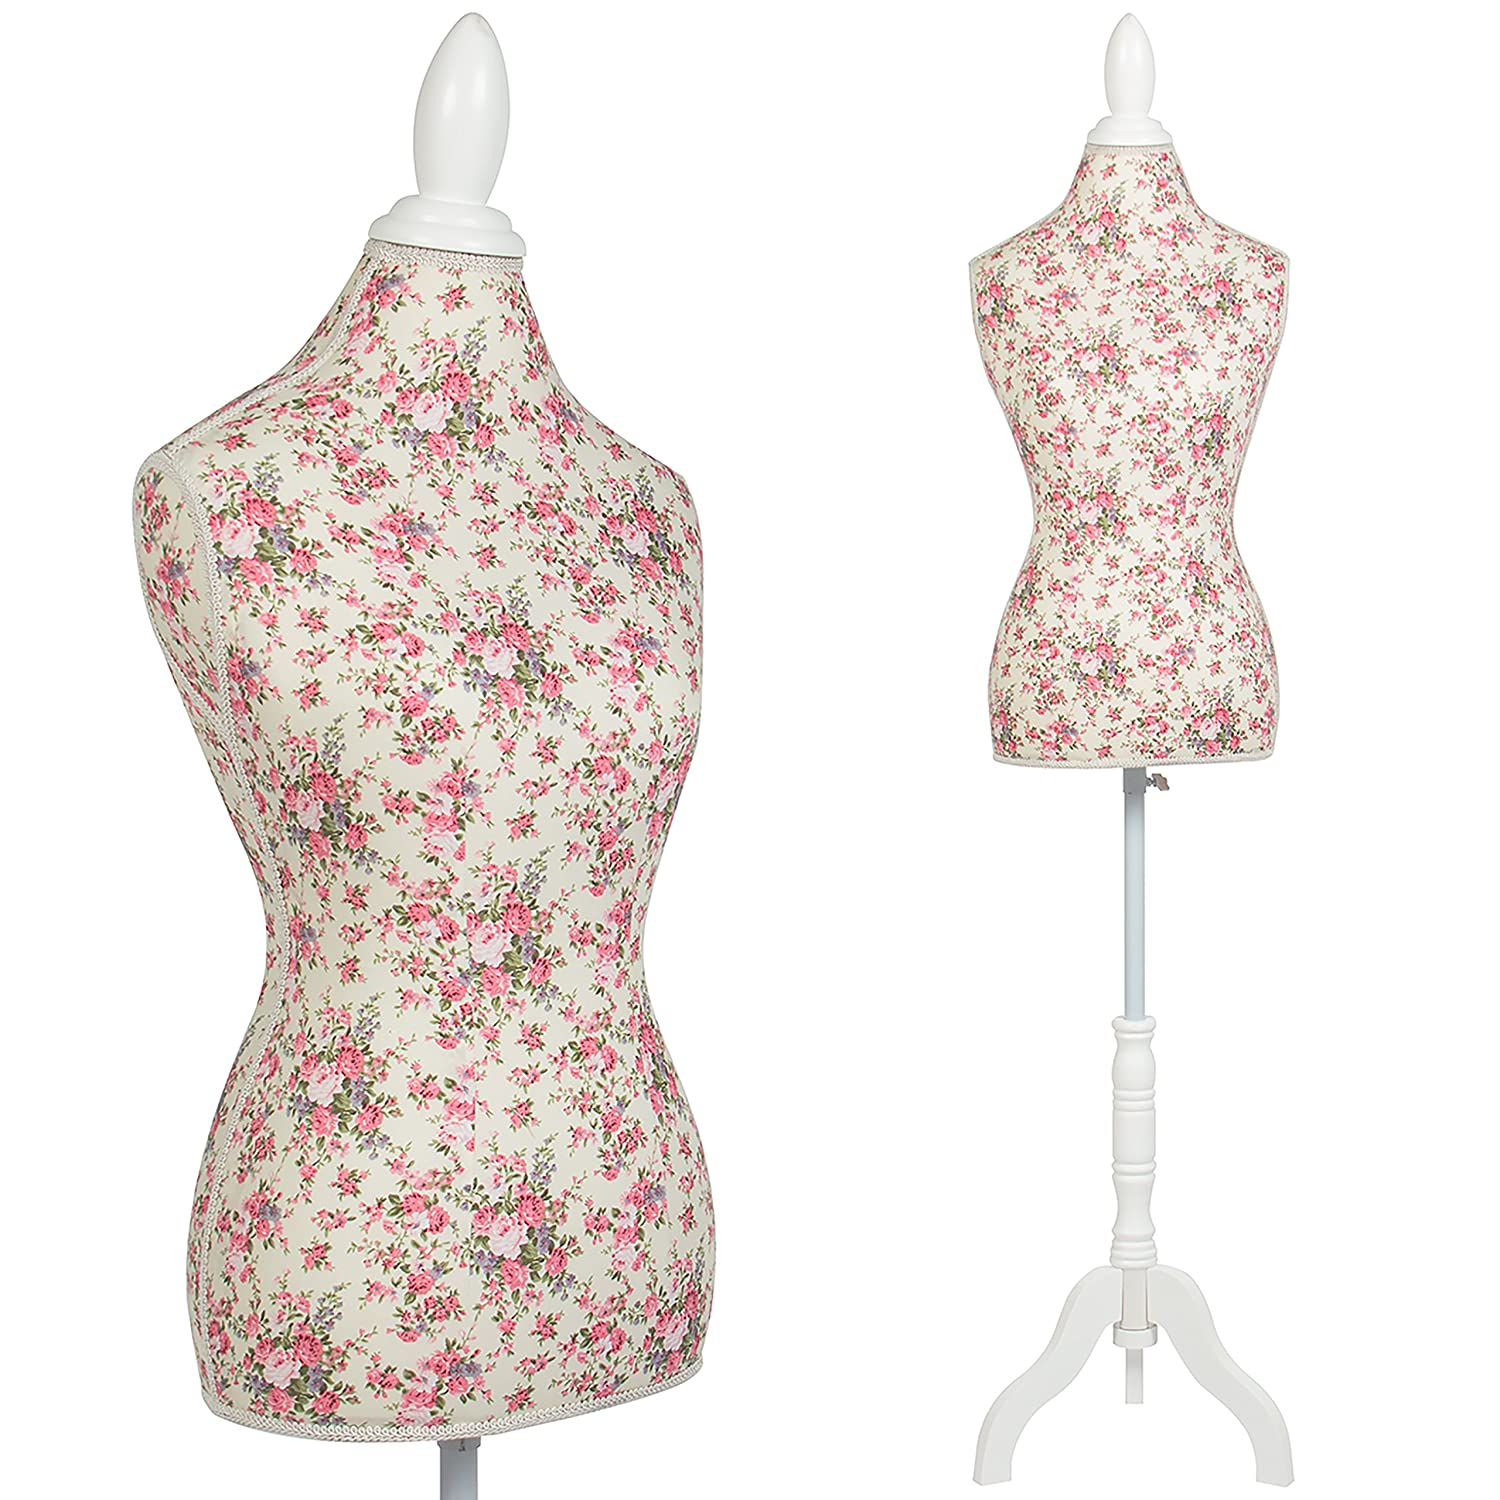 Amazon Best Choice Products Female Mannequin Torso Sewing Dress